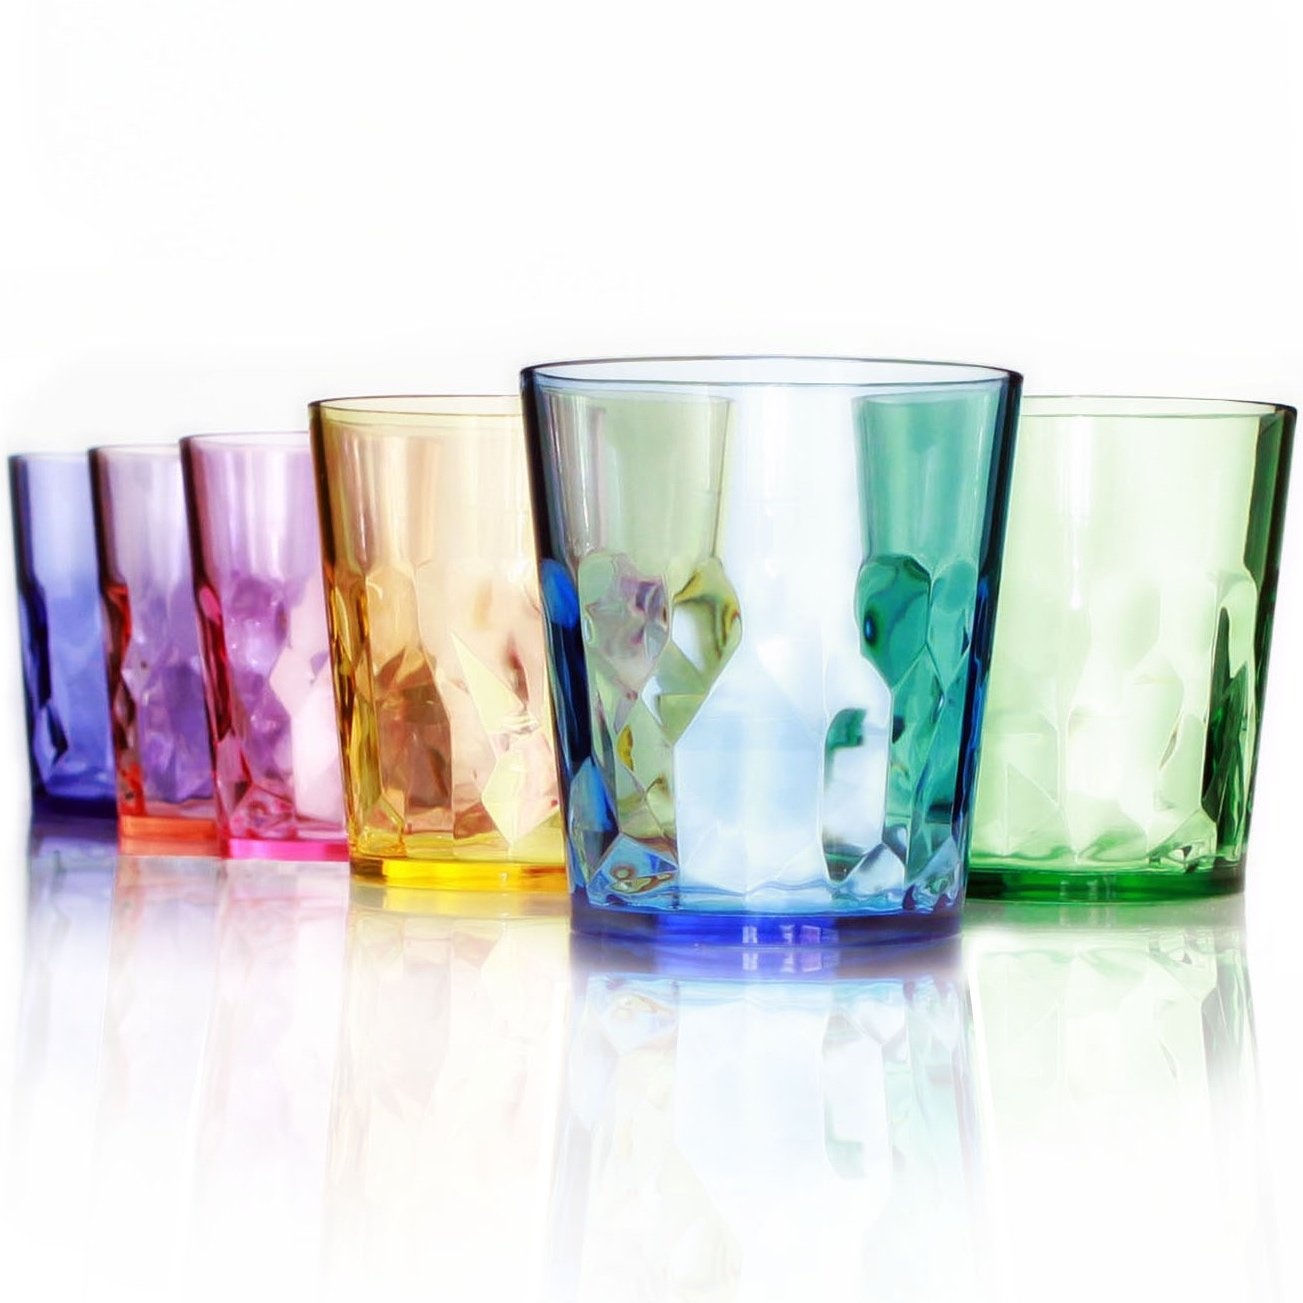 13 oz Premium Drinking Glasses - Set of 6 - Unbreakable Tritan Plastic - BPA Free - 100% Made in Japan (Assorted Colors)